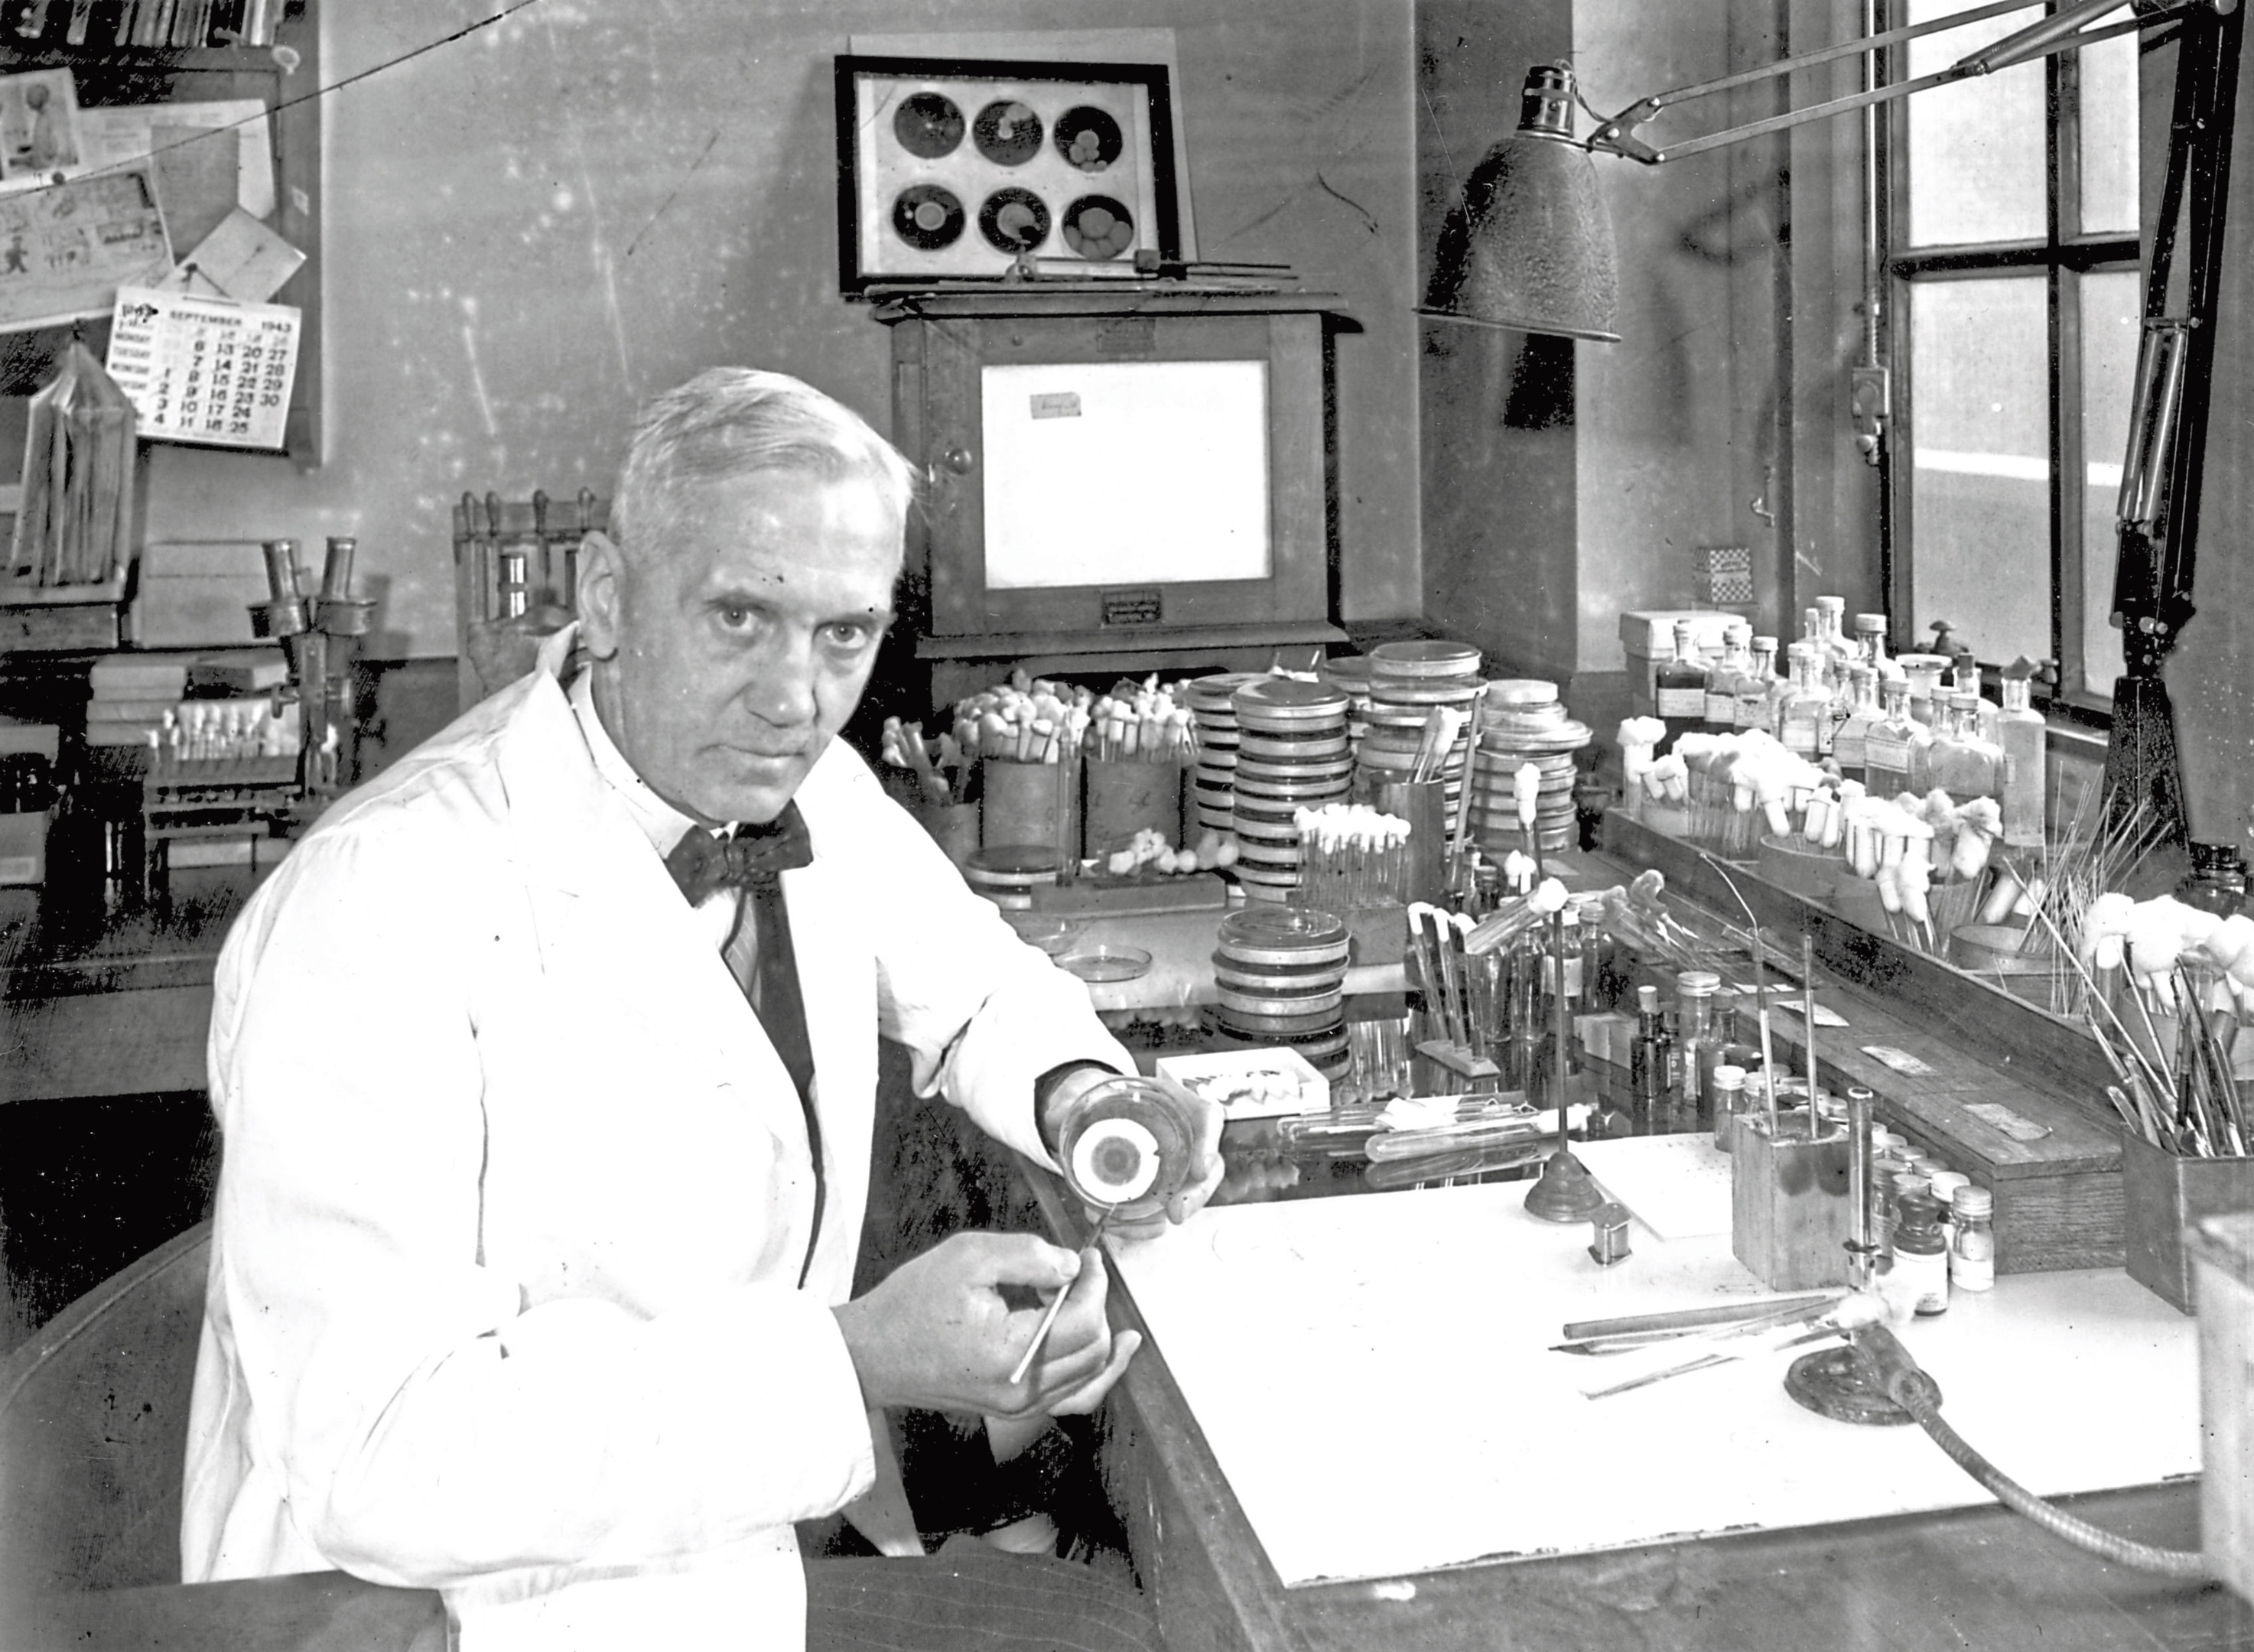 Sir Alexander Fleming in his lab at St Mary's Hospital in Paddington, London, 1943 (Davies/Keystone/Hulton Archive/Getty Images)